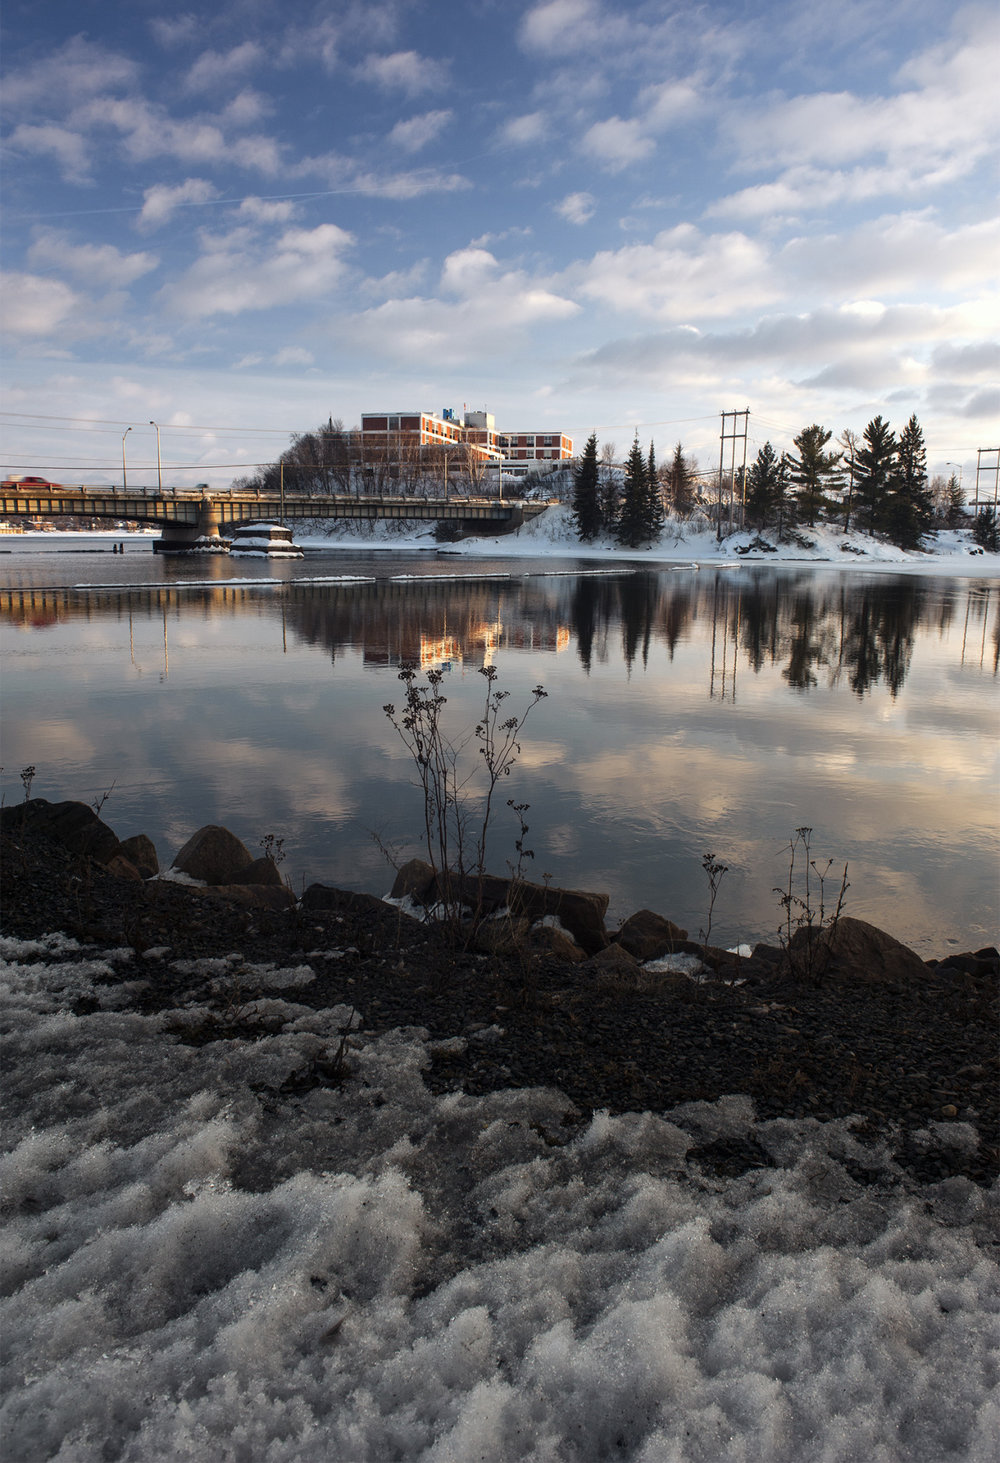 Kenora waterfront in winter. © Robert Lowdon